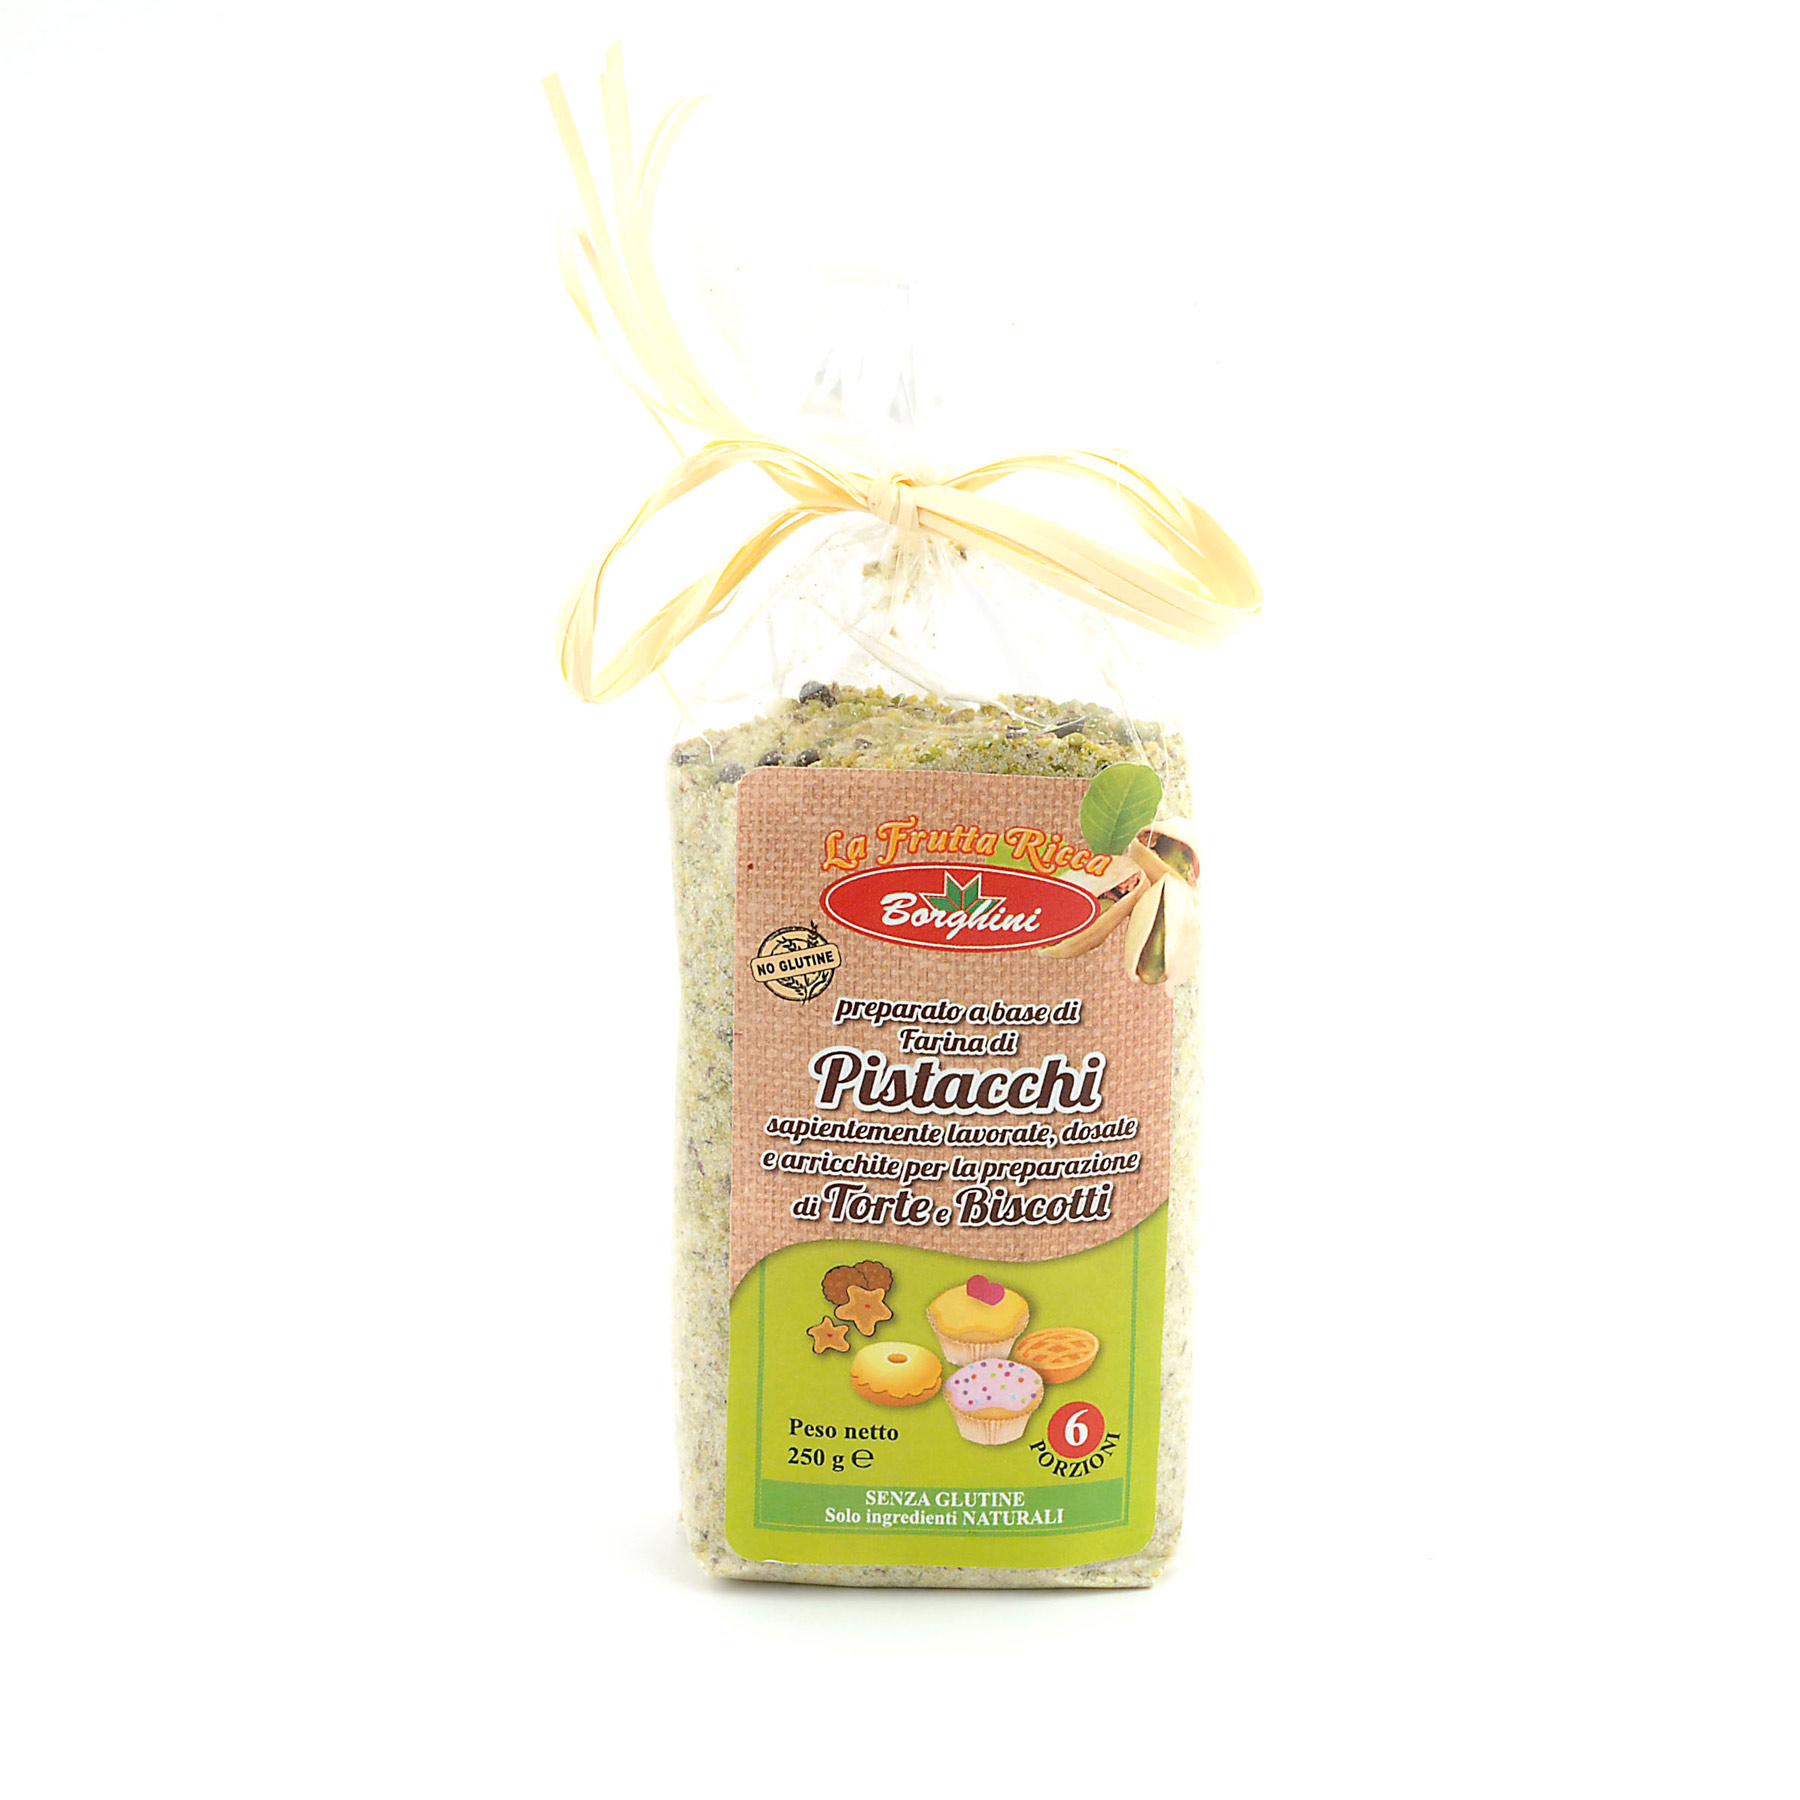 'Pistacchi' Pistacchio Biscuit Mix *Gluten Free* from Borghini